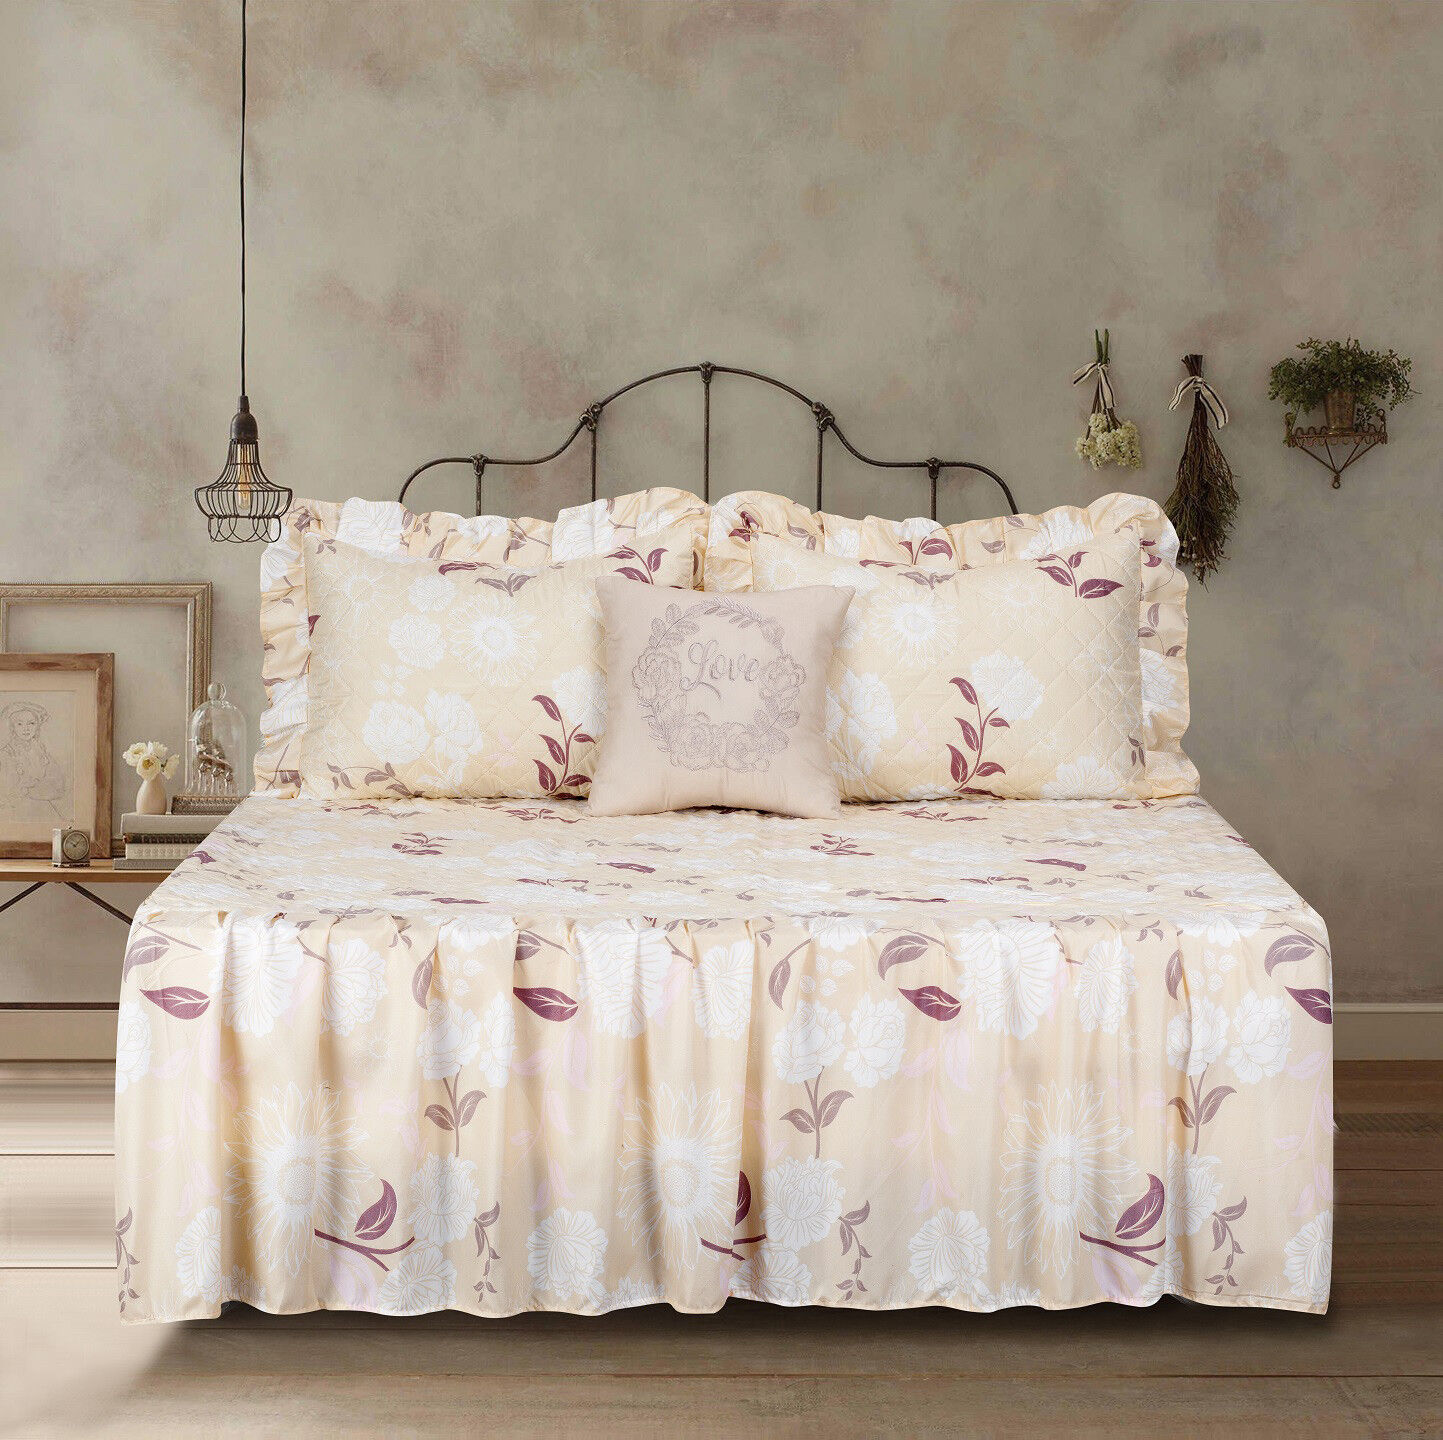 Twin Full Queen or King Quilt Floral Flowers Ruffle Bedsprea